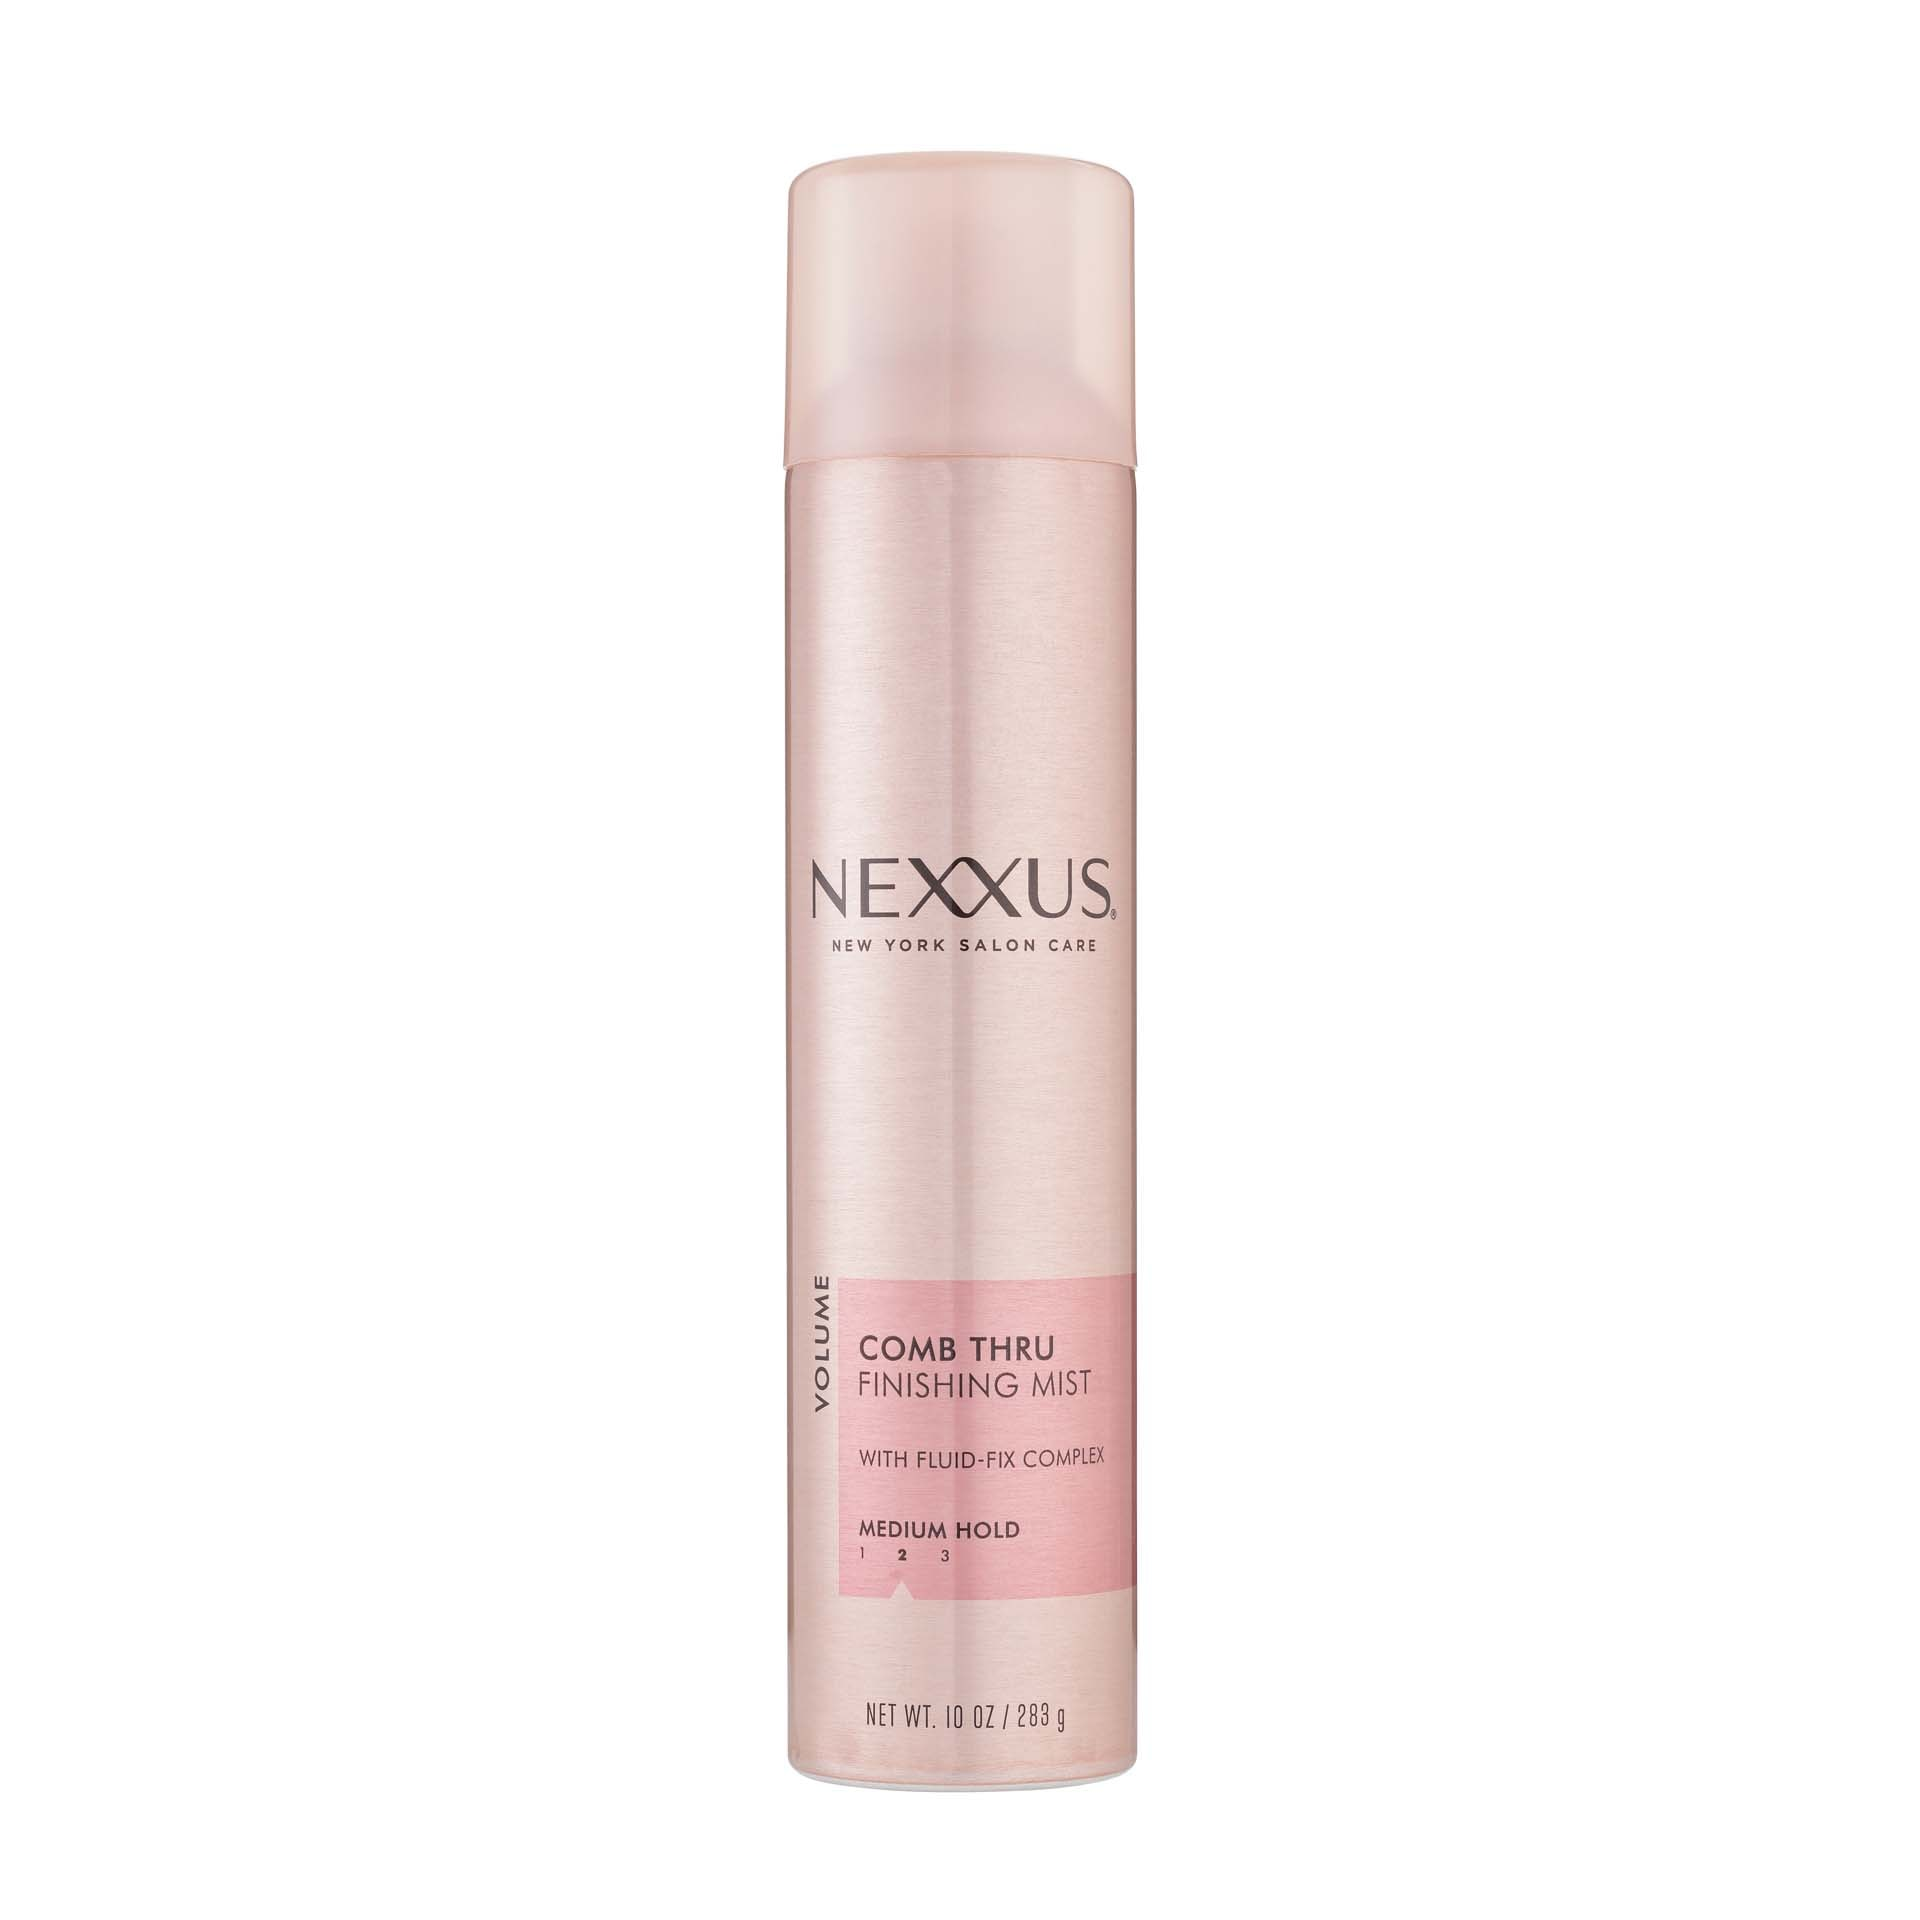 NEXXUS STYLING COMB THRU FINISHING MIST